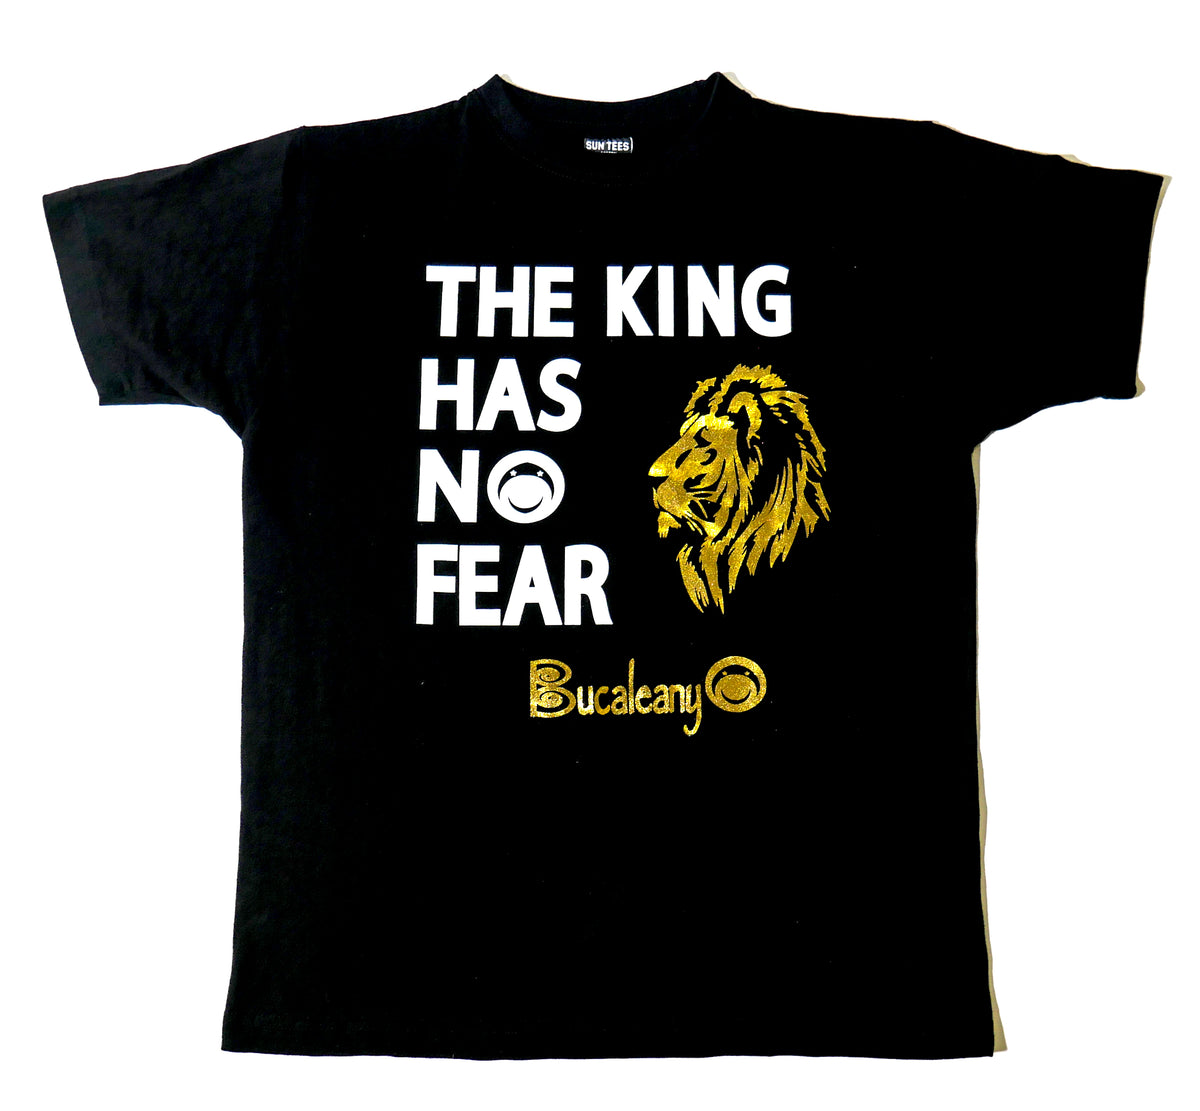 The King Has No Fear - BUCALEANY